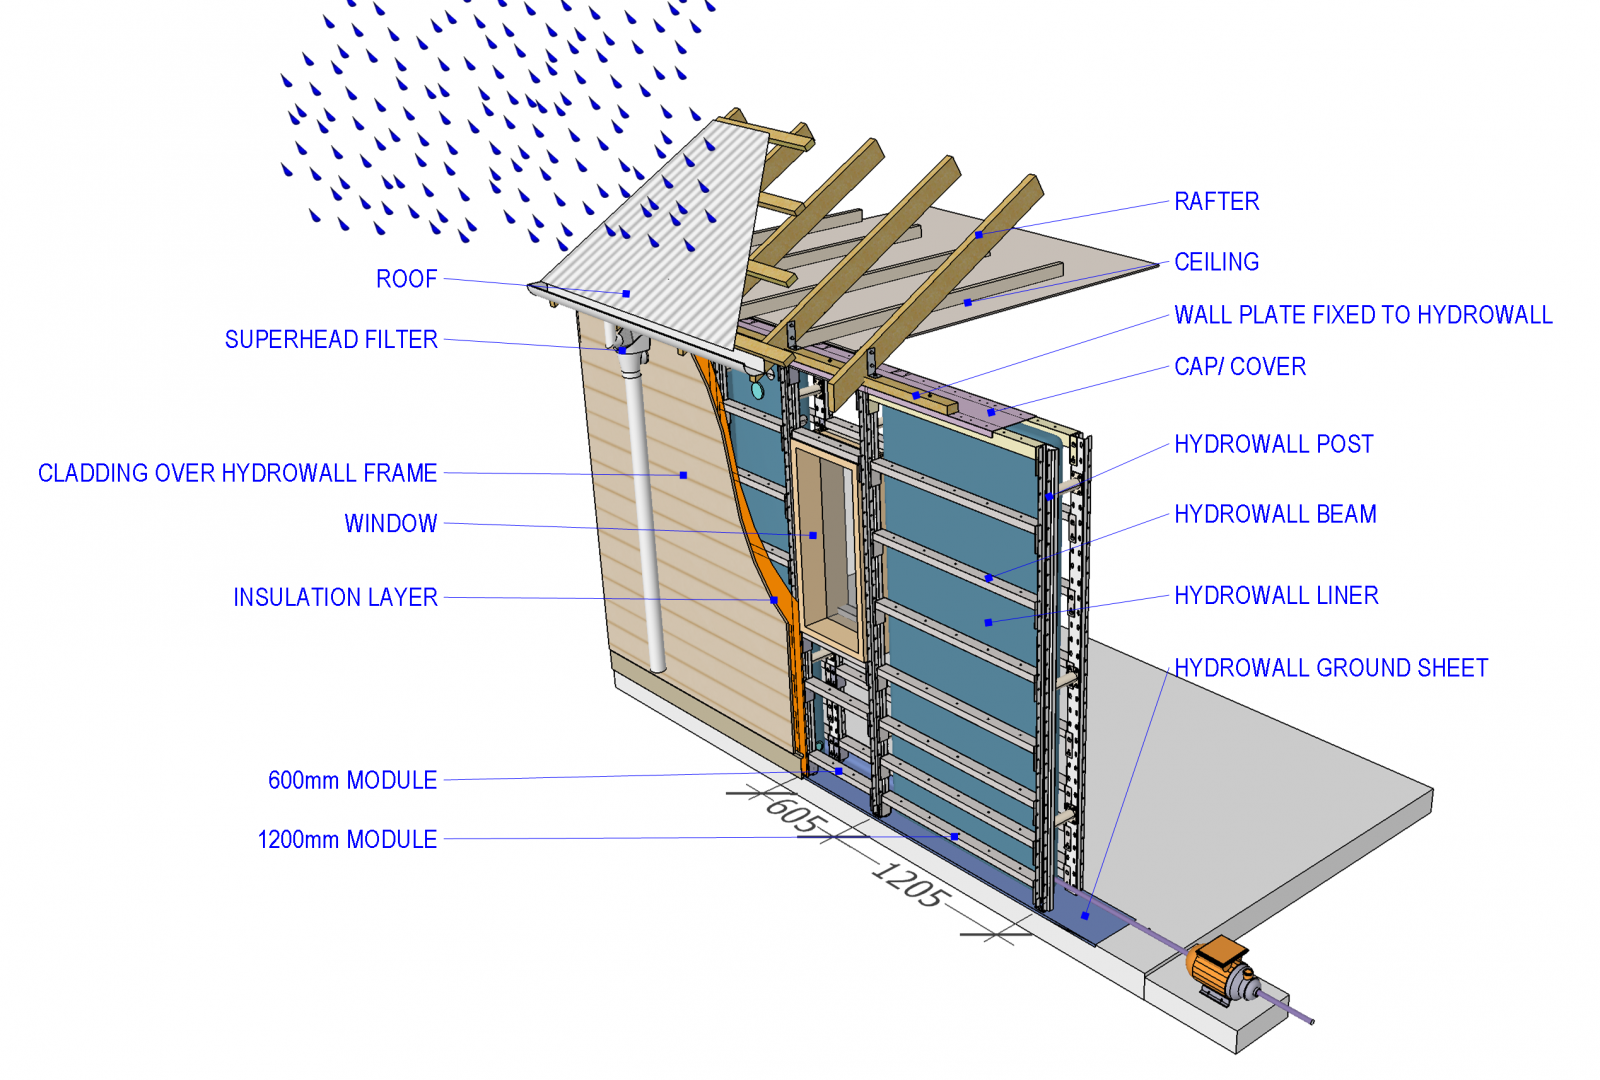 Hydrowall modular wall system members albums category for Water wall plans